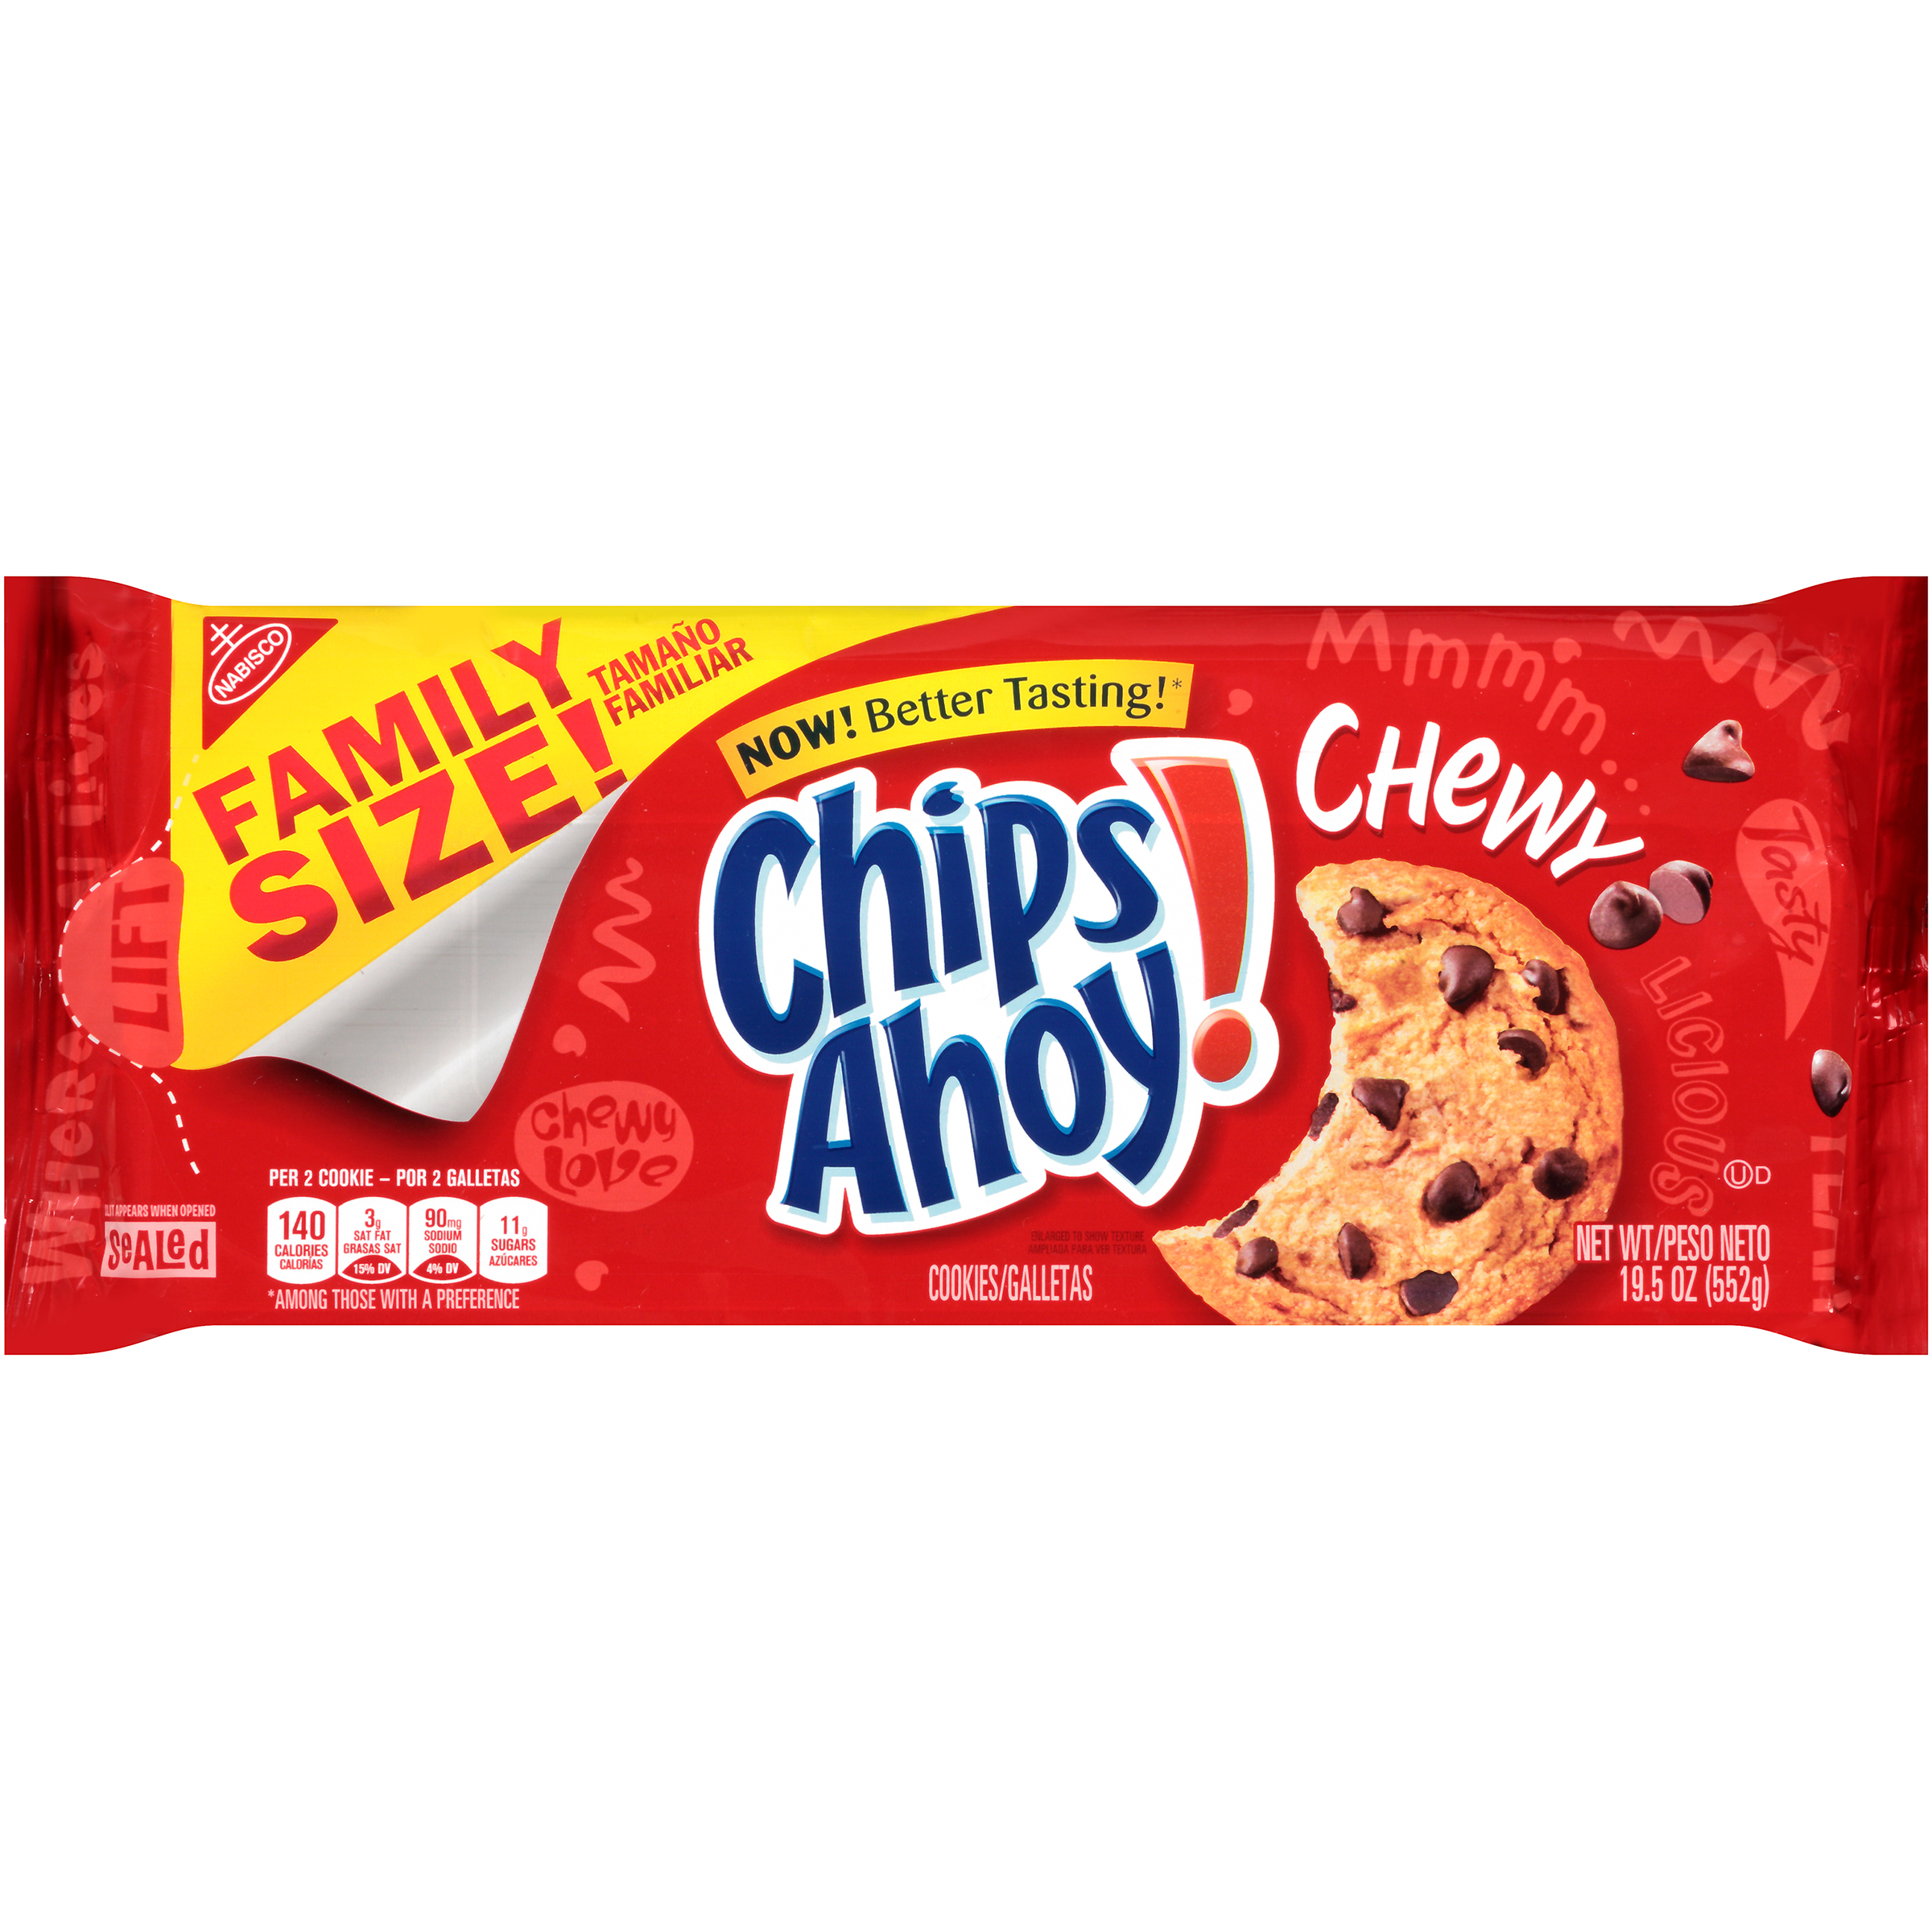 Superb Chips Ahoy Chewy Chocolate Chip Cookies 19 5 Oz Walmart Com Funny Birthday Cards Online Fluifree Goldxyz